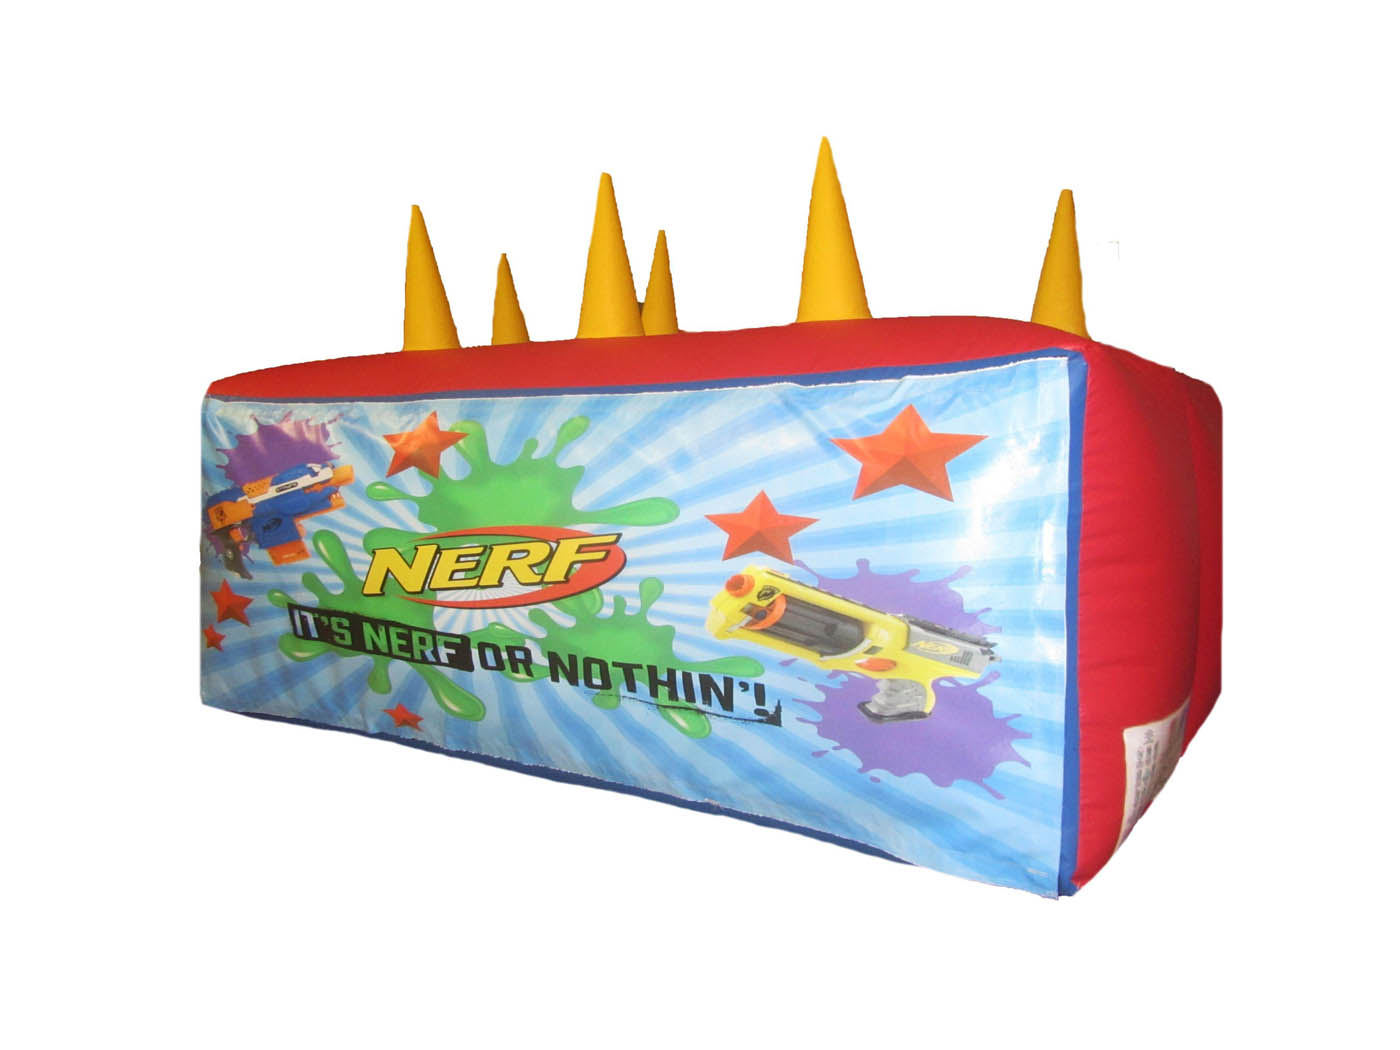 Nerf-target-inflatable-printed-velcro-compressor